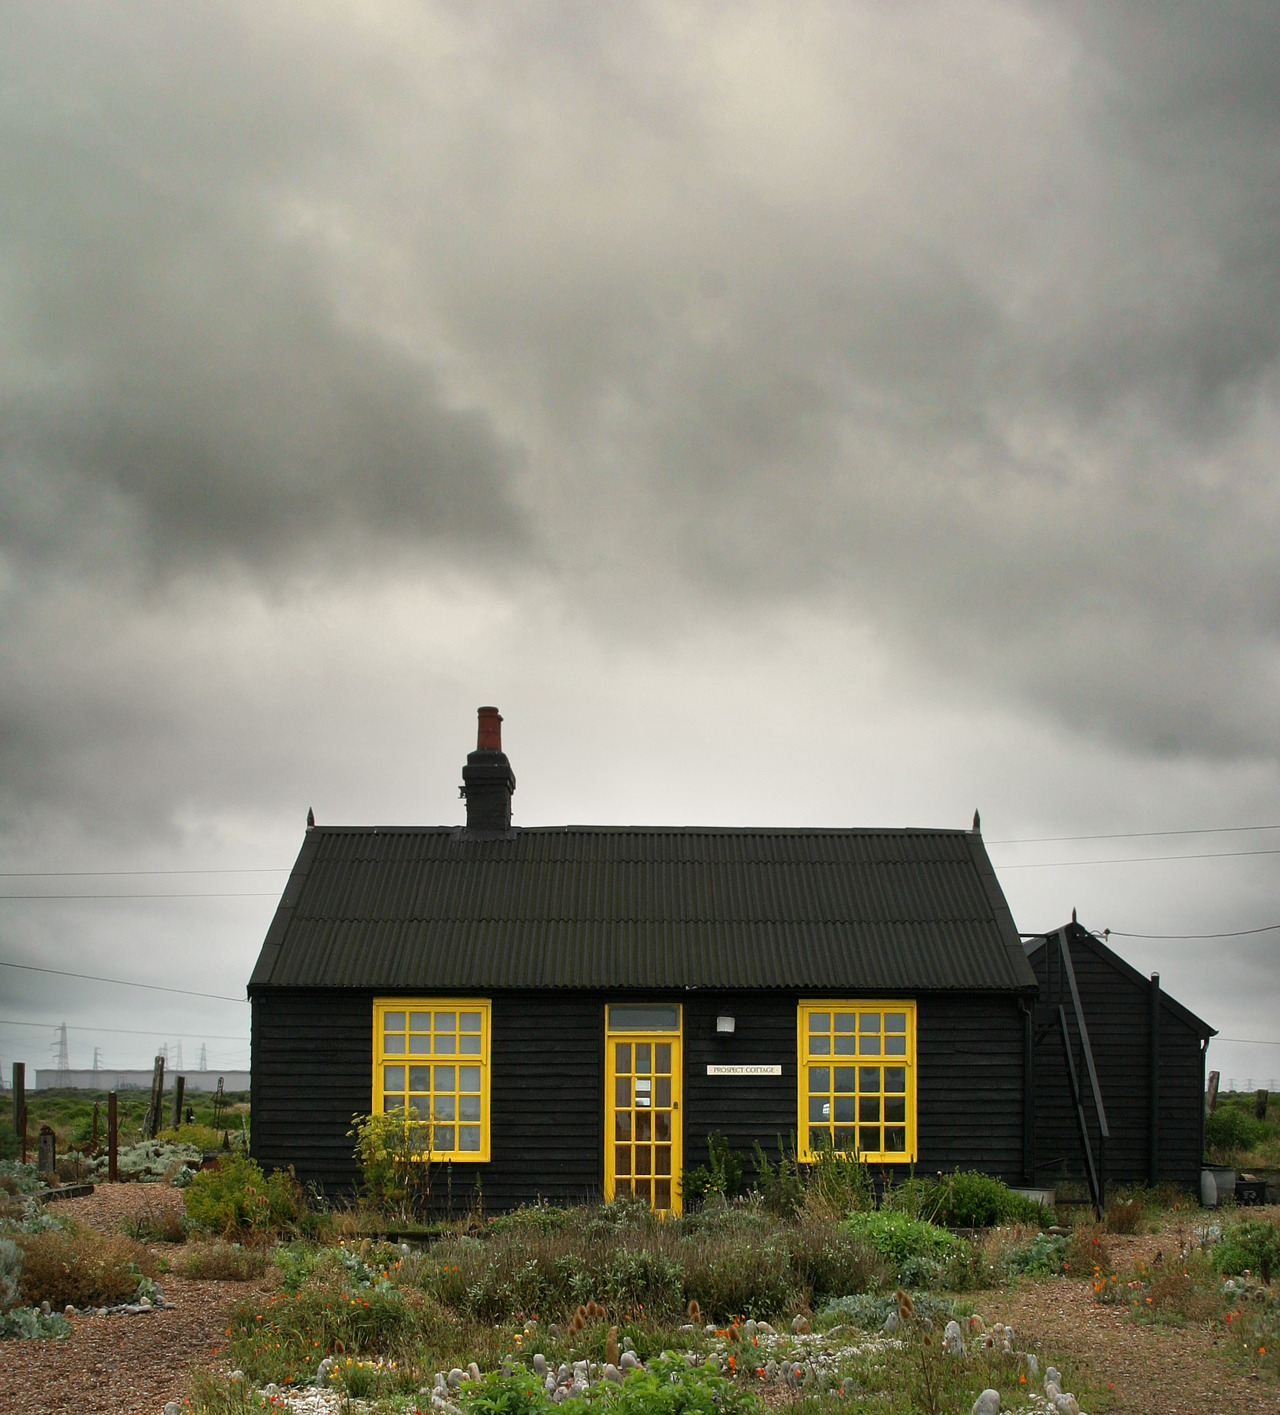 cabinporn: Cottage in Dungeness, Kent, England. Submitted by Paul McNeil.